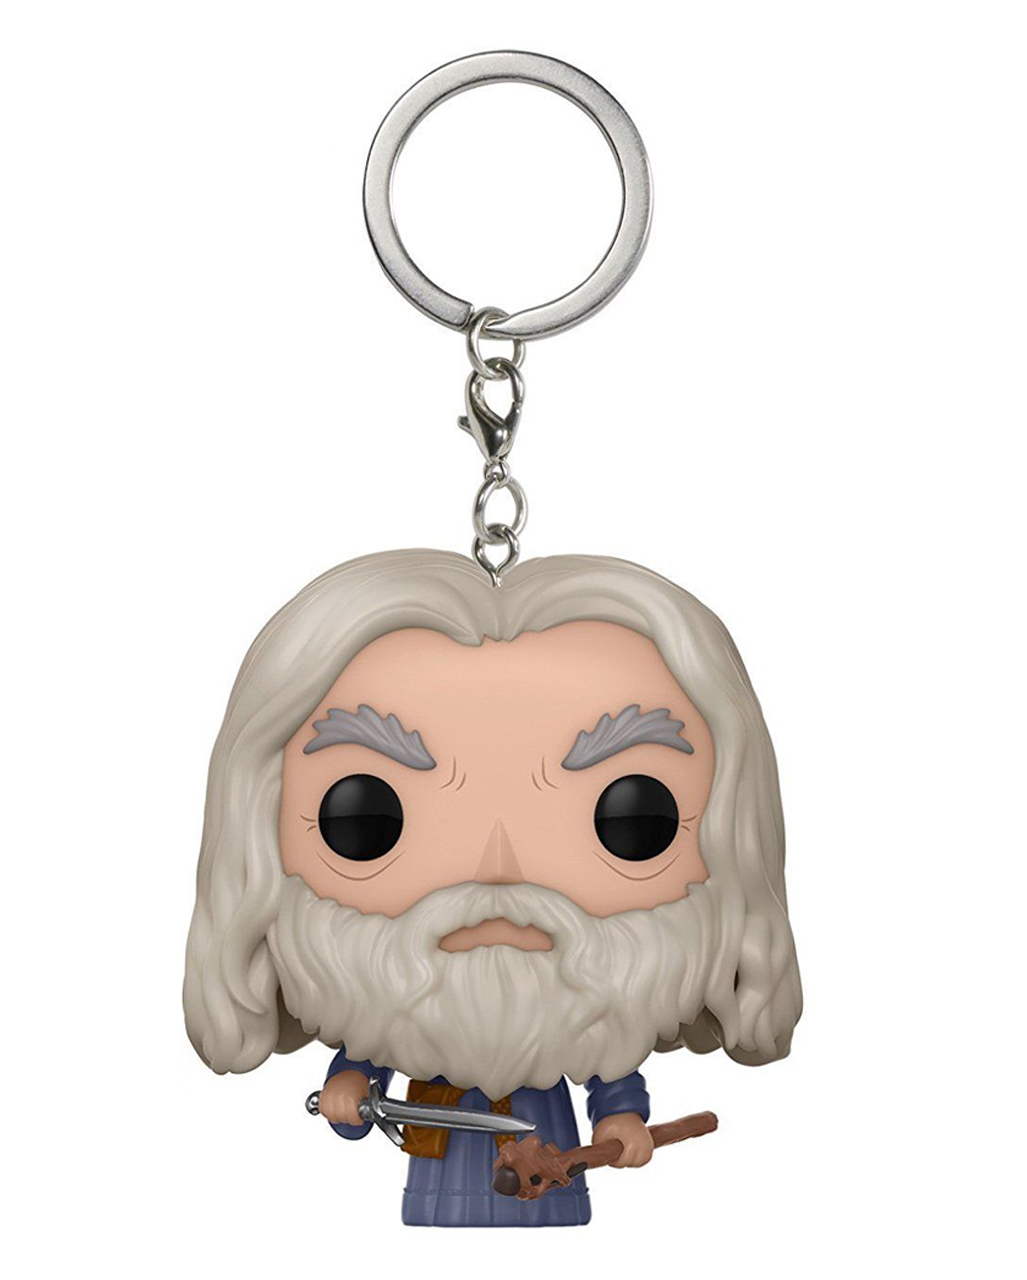 Lord Of The Rings Pop Keychain